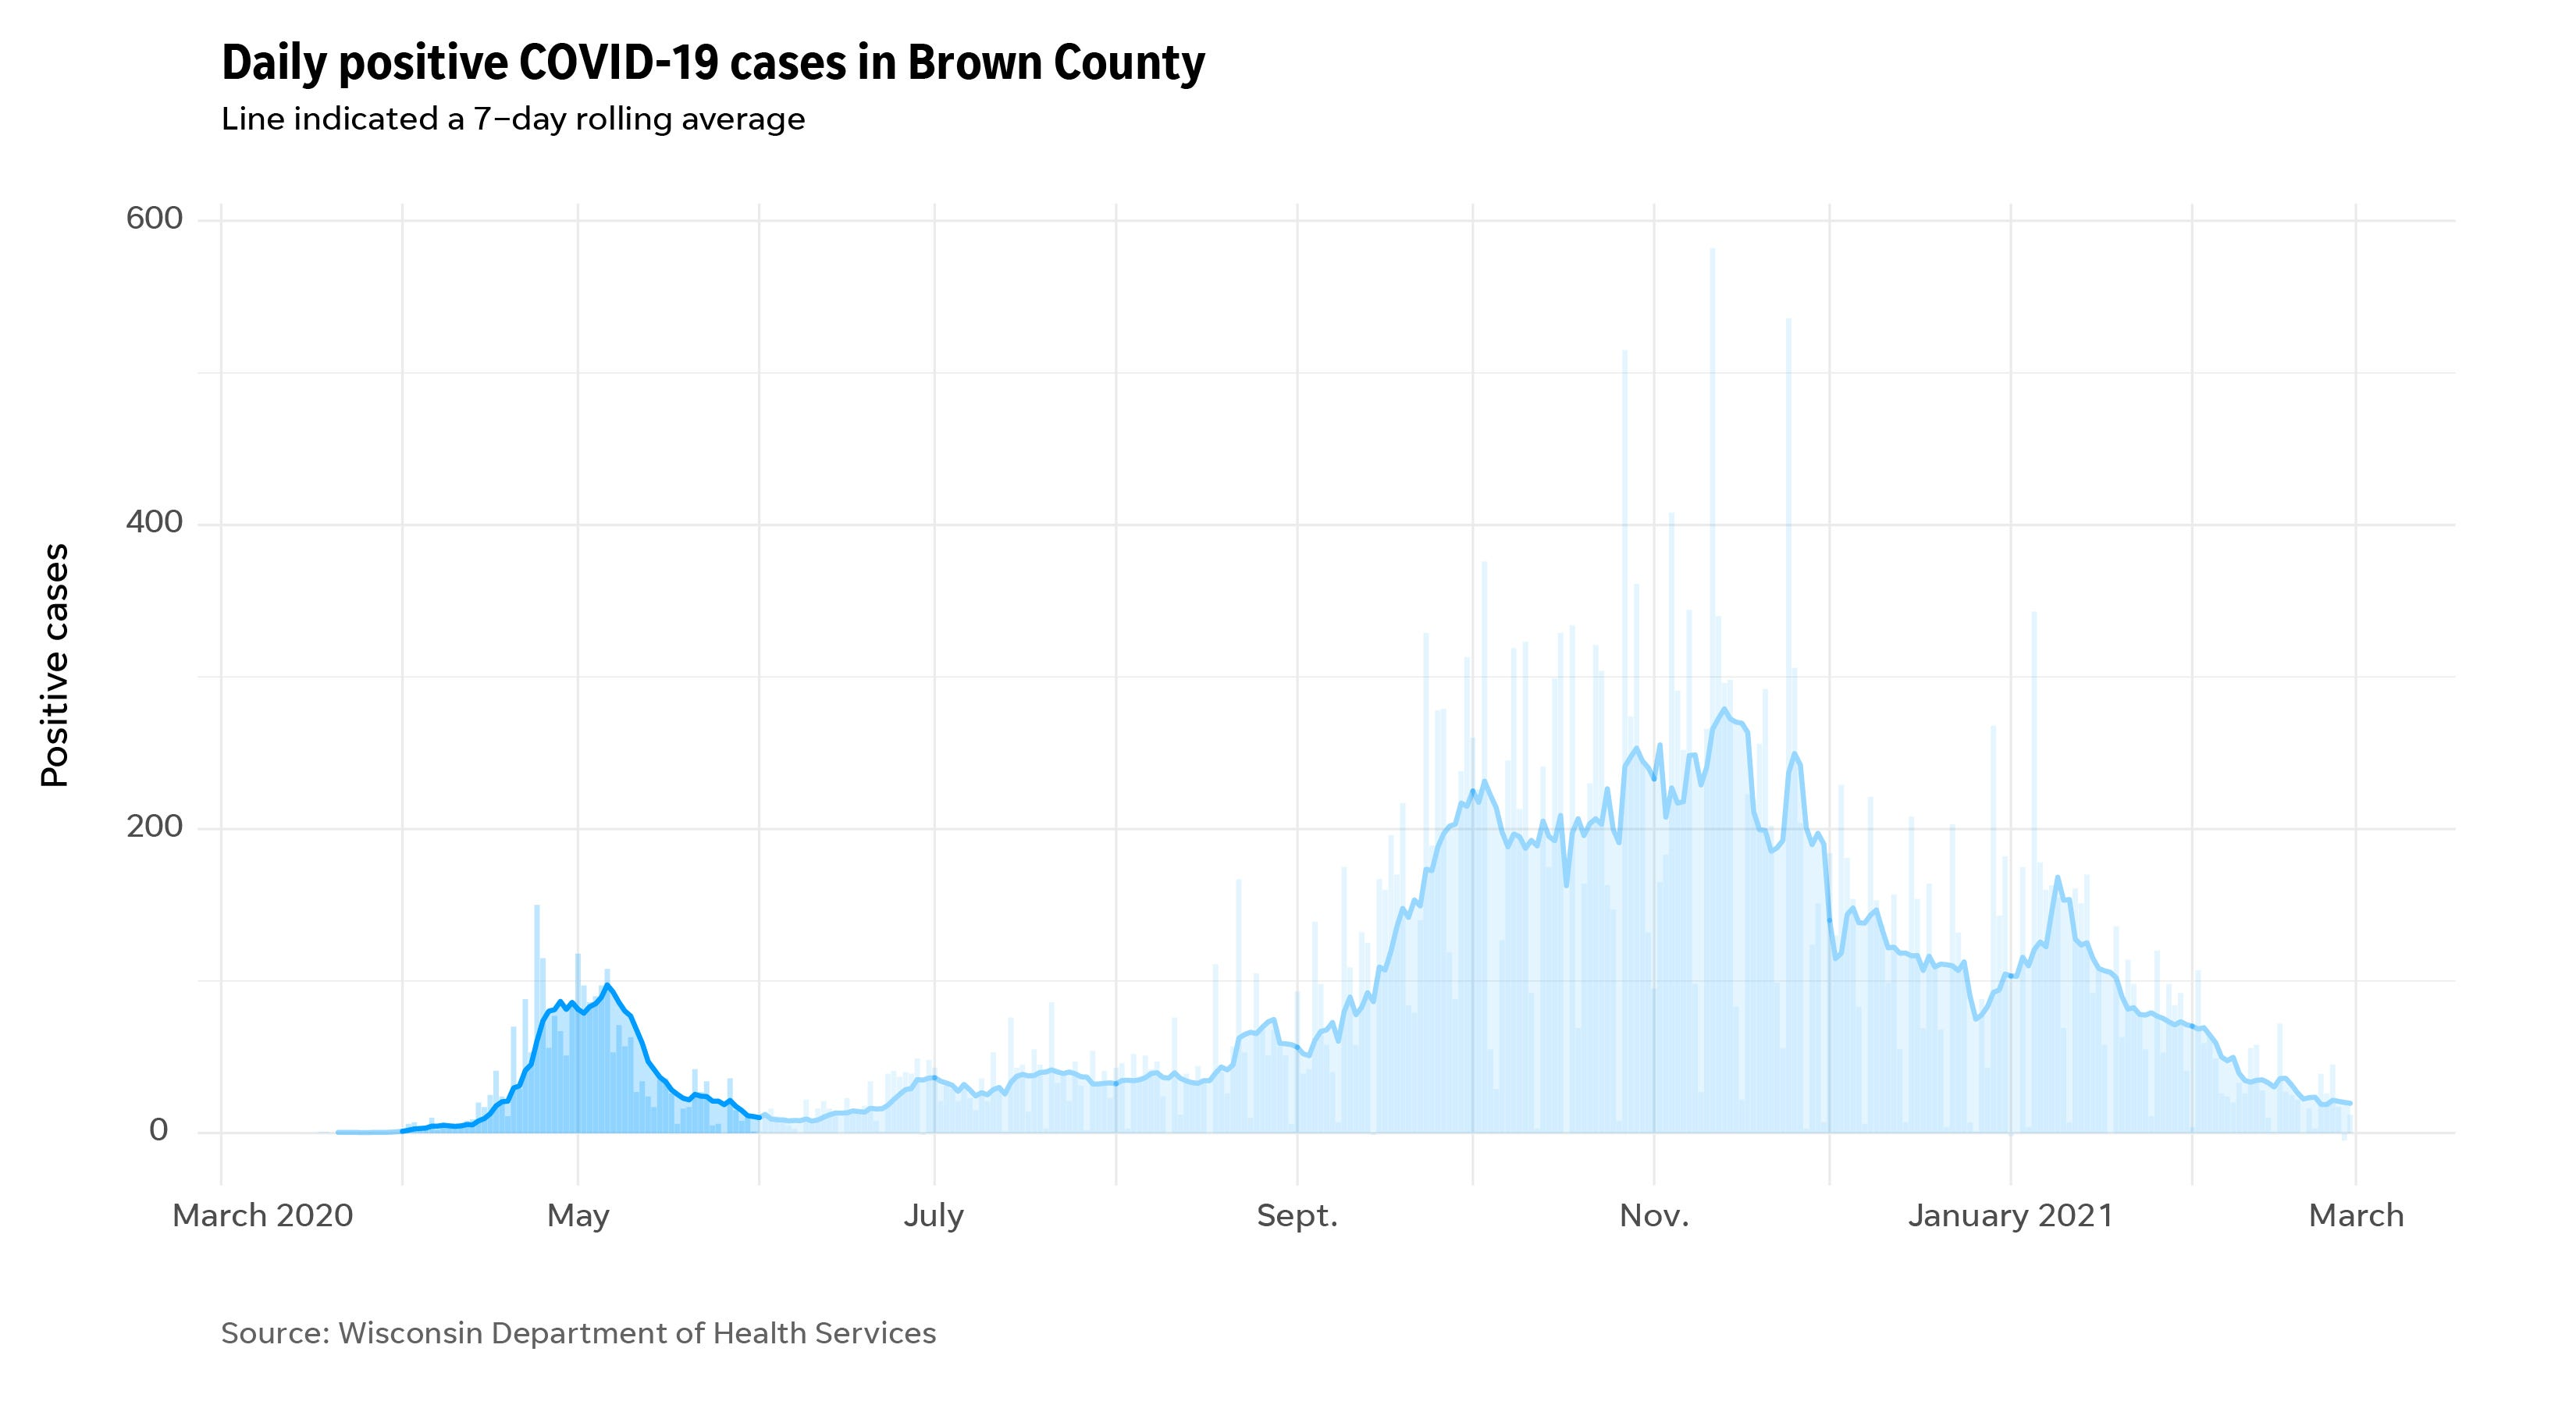 Brown county COVID-19 cases during the pandemic highlighting an early spike in April and May.